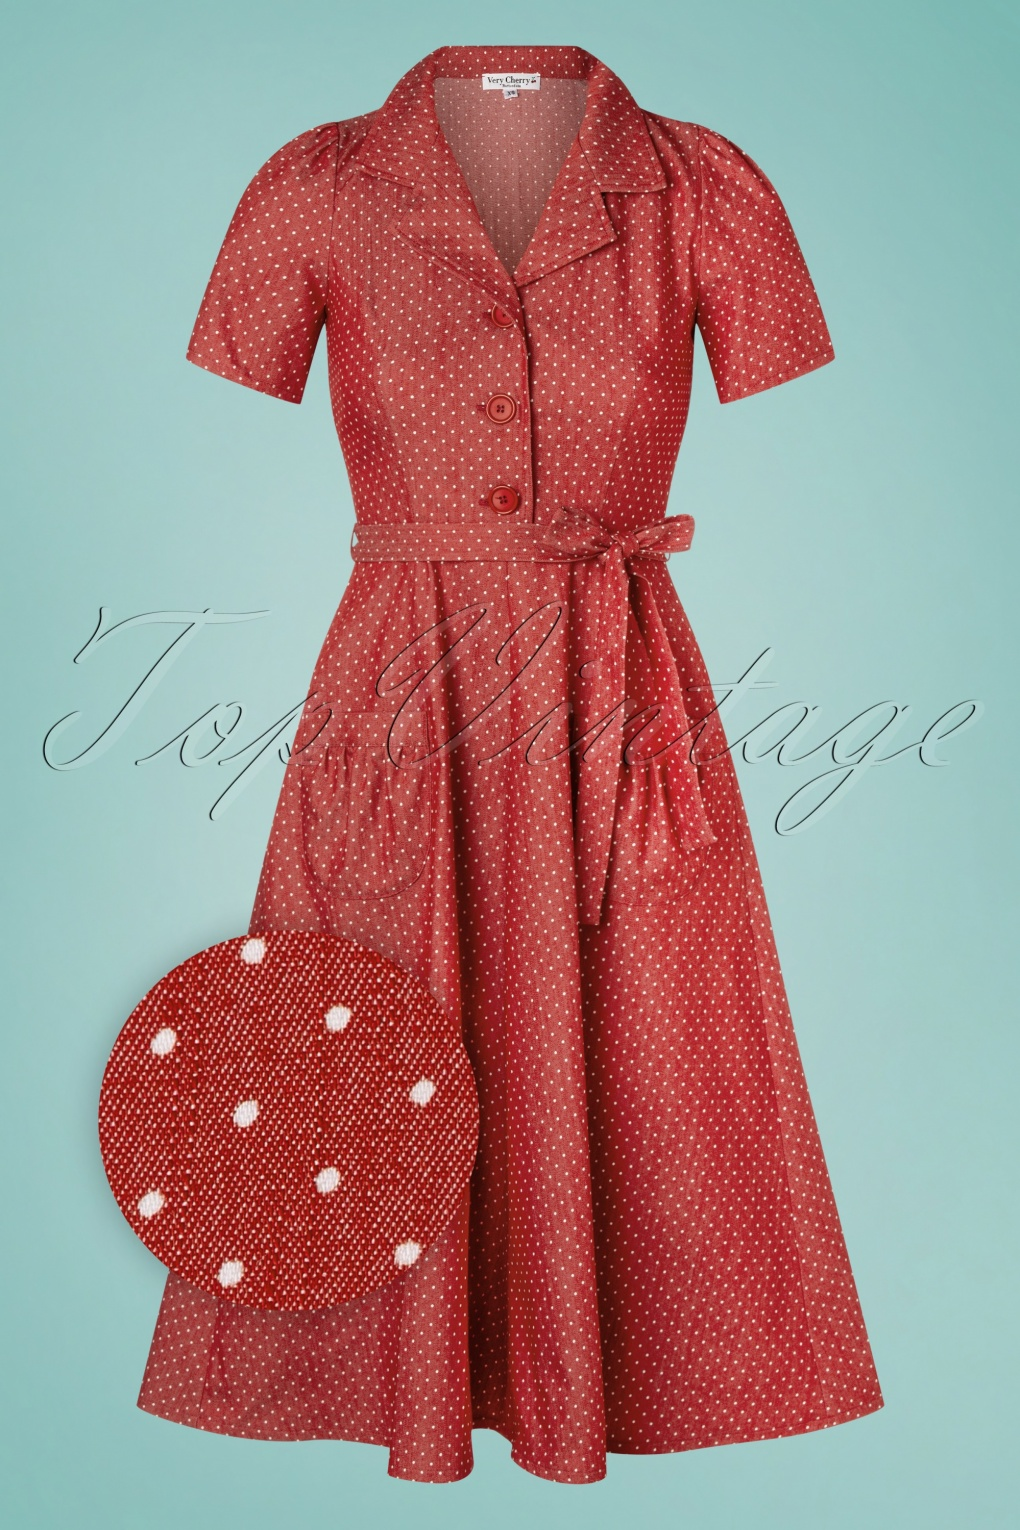 1940s Dress Styles 40s Revers Midi Dots Dress in Denim Red £19.95 AT vintagedancer.com